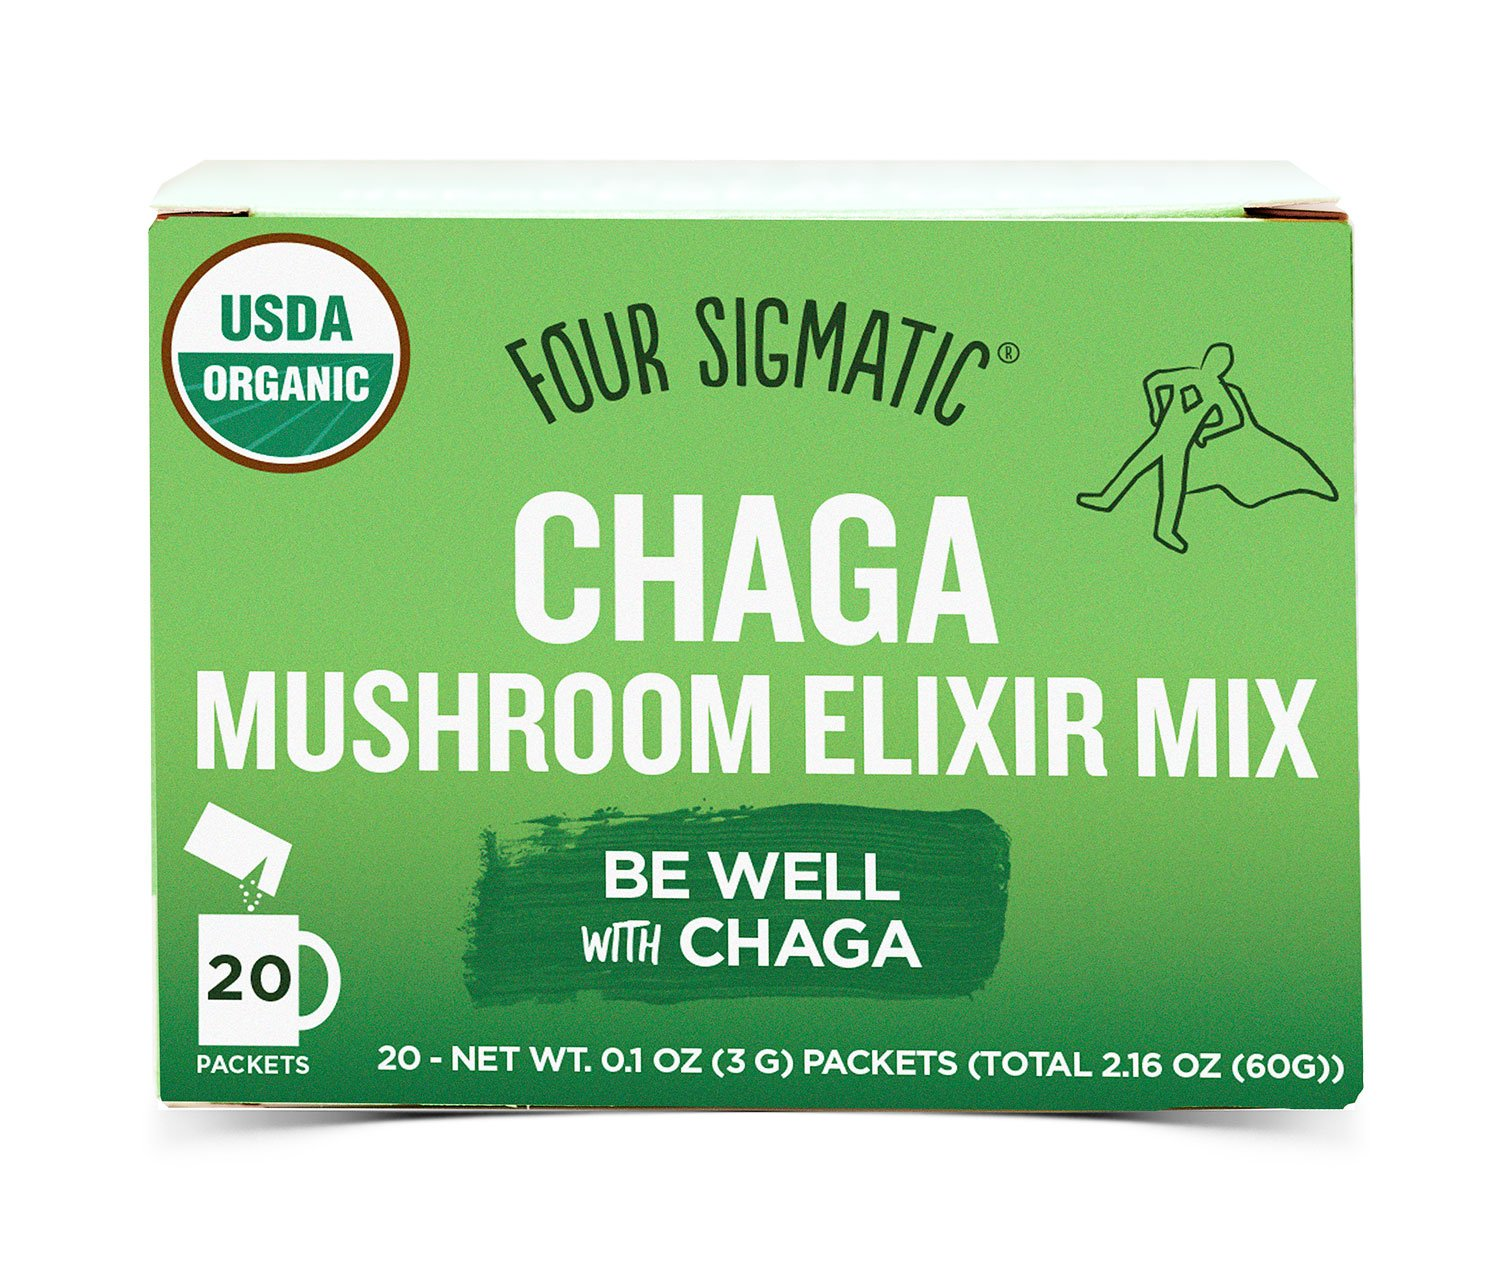 Four Sigmatic Chaga Mushroom Elixir, USDA Organic, wellbeing, Vegan, Paleo, 20 Count, Packaging May Vary